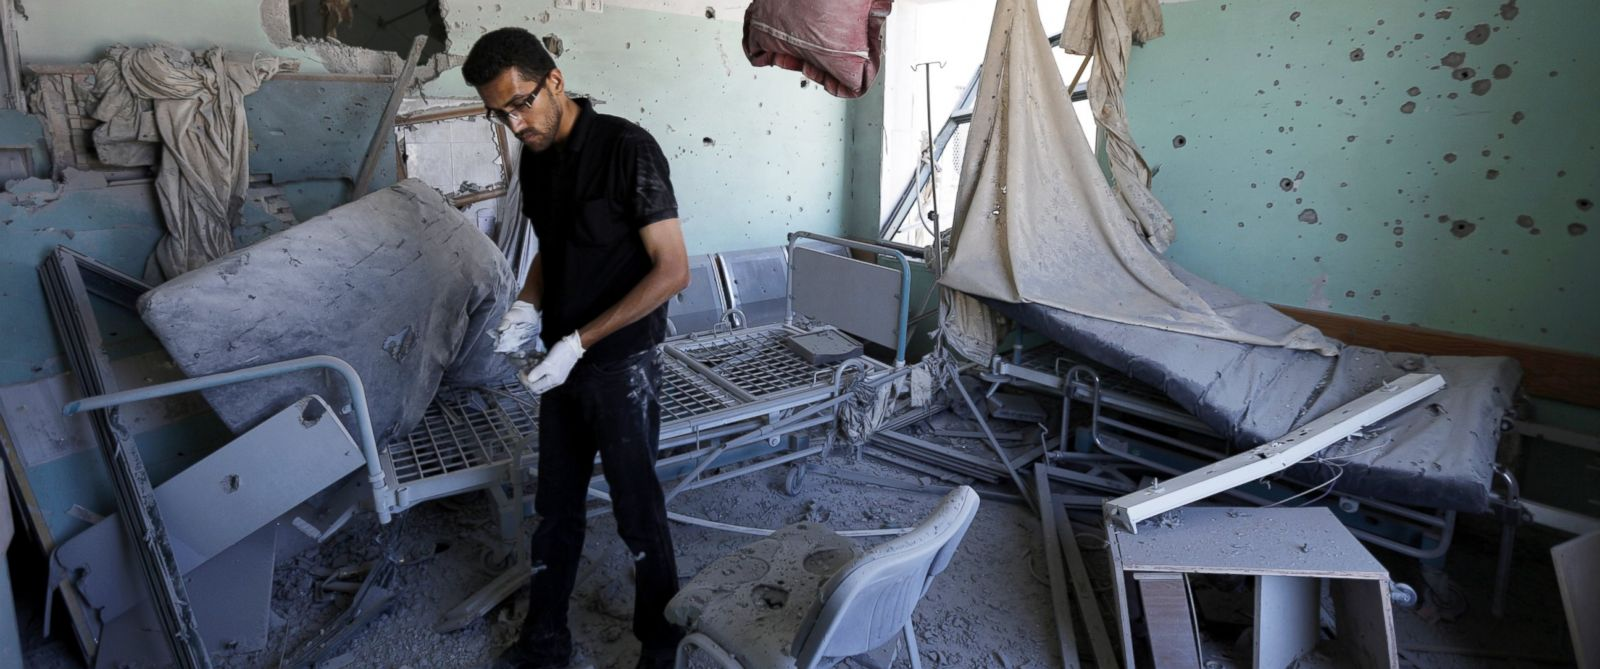 PHOTO: A Palestinian employee inspects the damage to a room at the Al-Aqsa Martyrs hospital in Deir al-Balah in the central Gaza Strip after the building was shelled by the Israeli army on July 21, 2014.